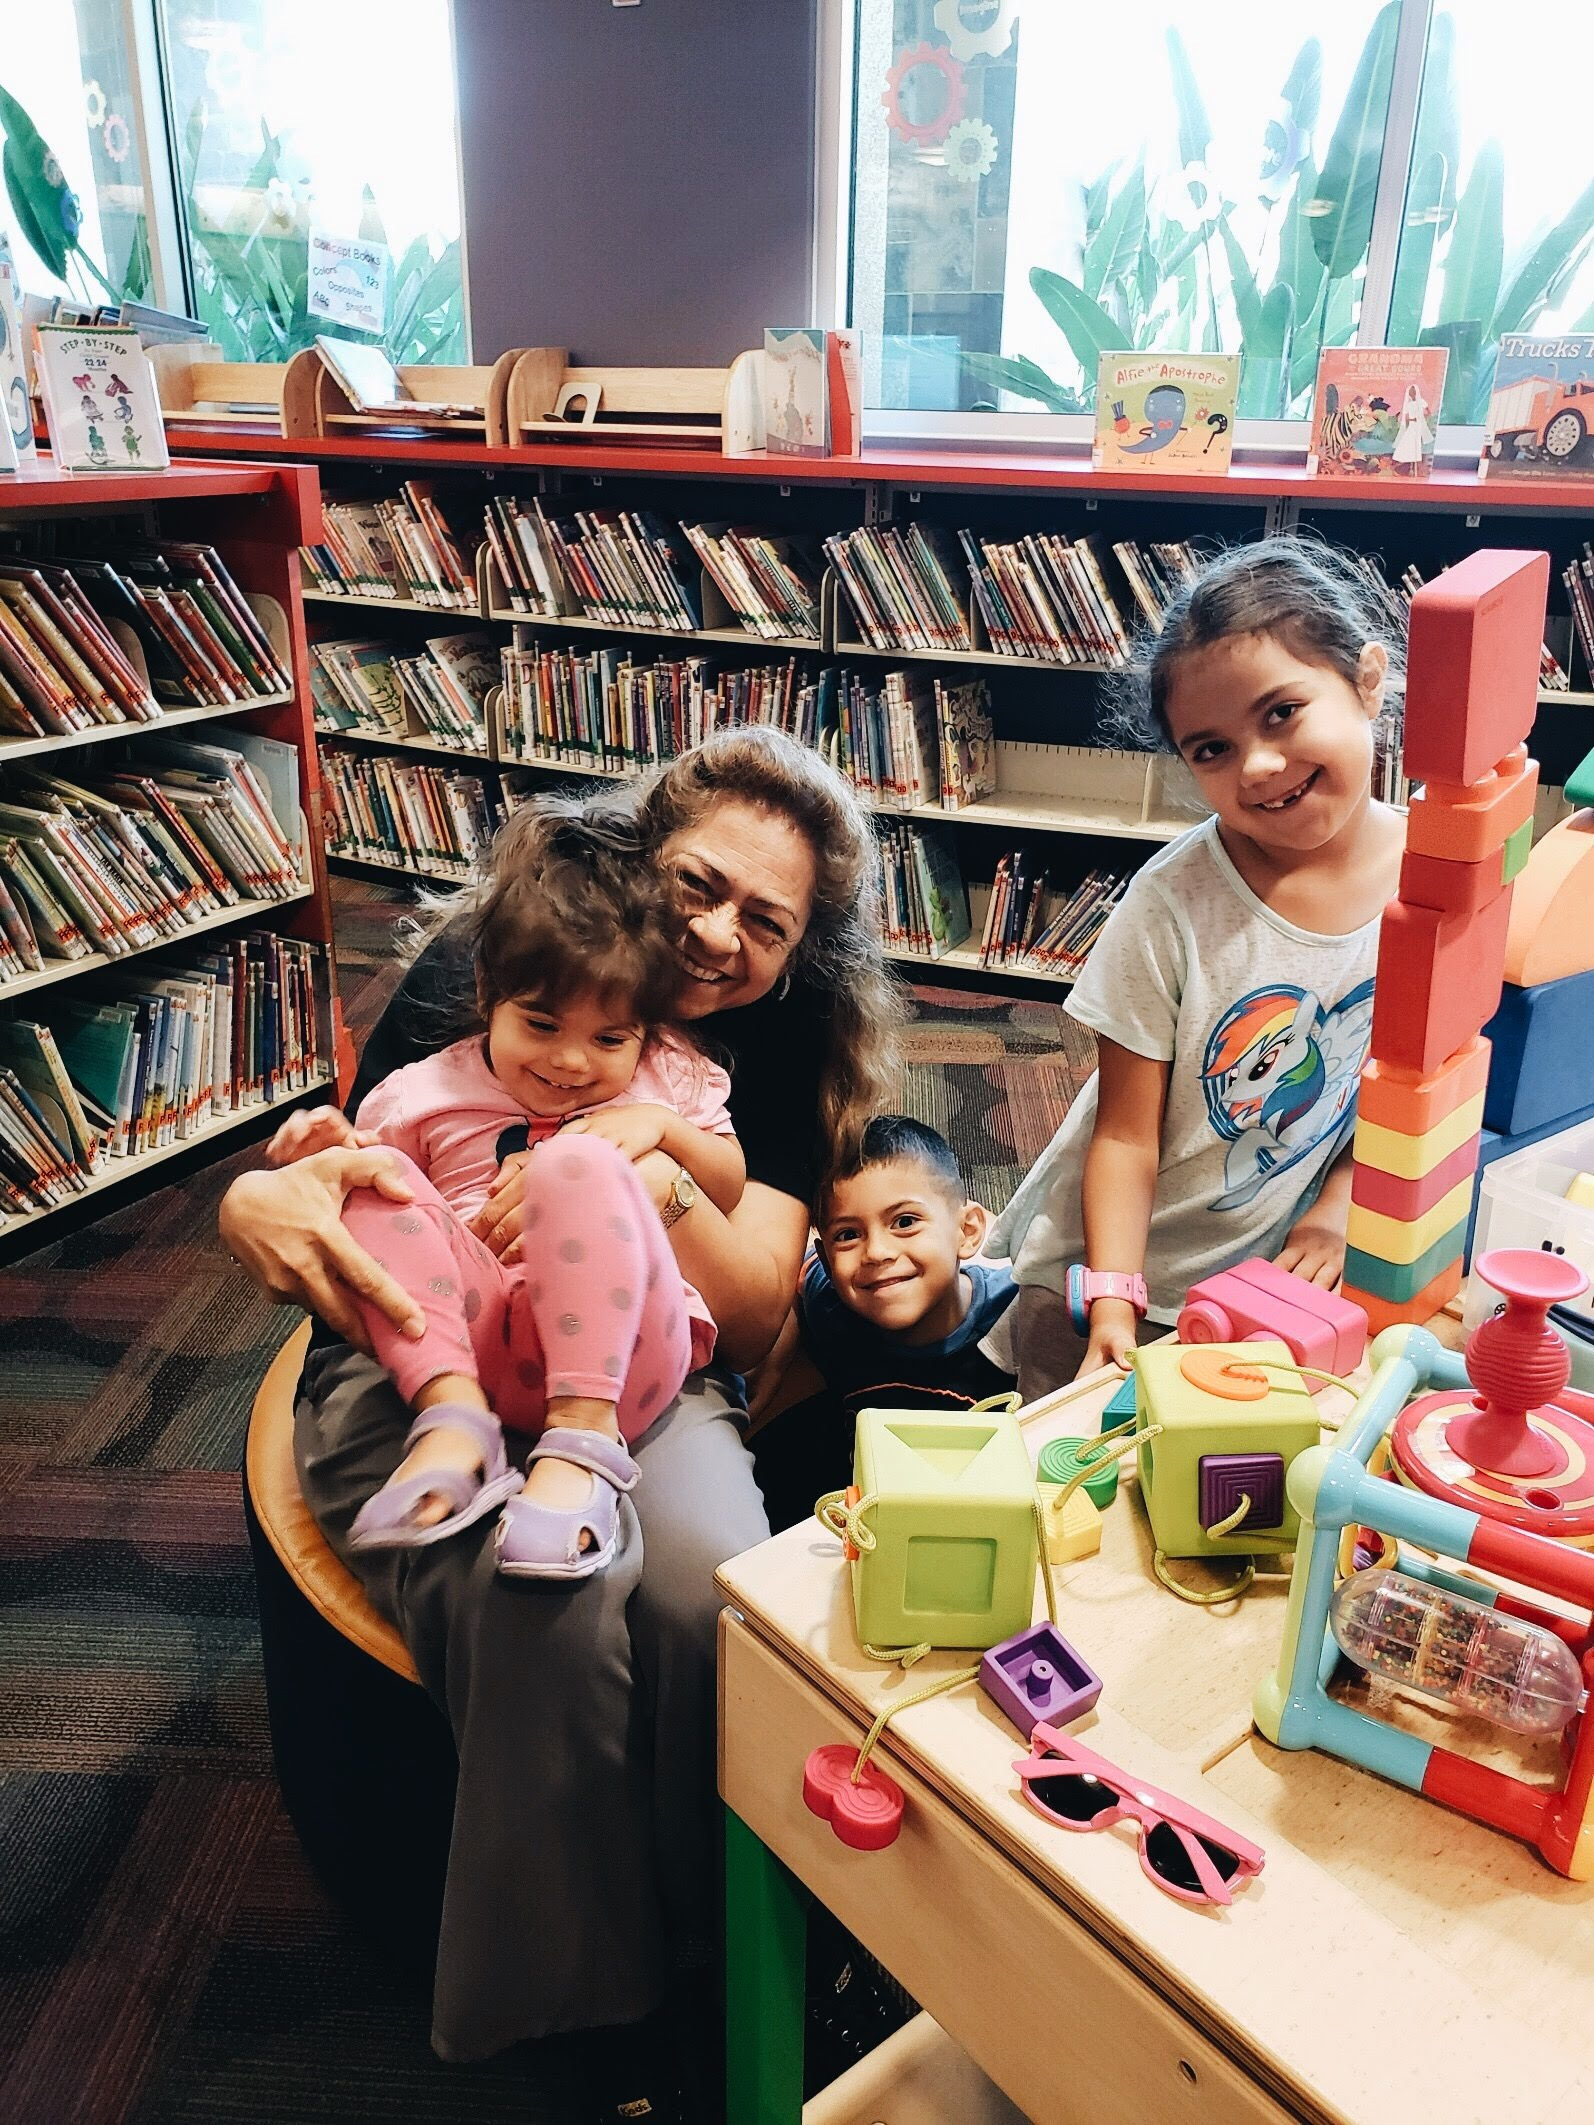 free activities for kids at the public library.jpg